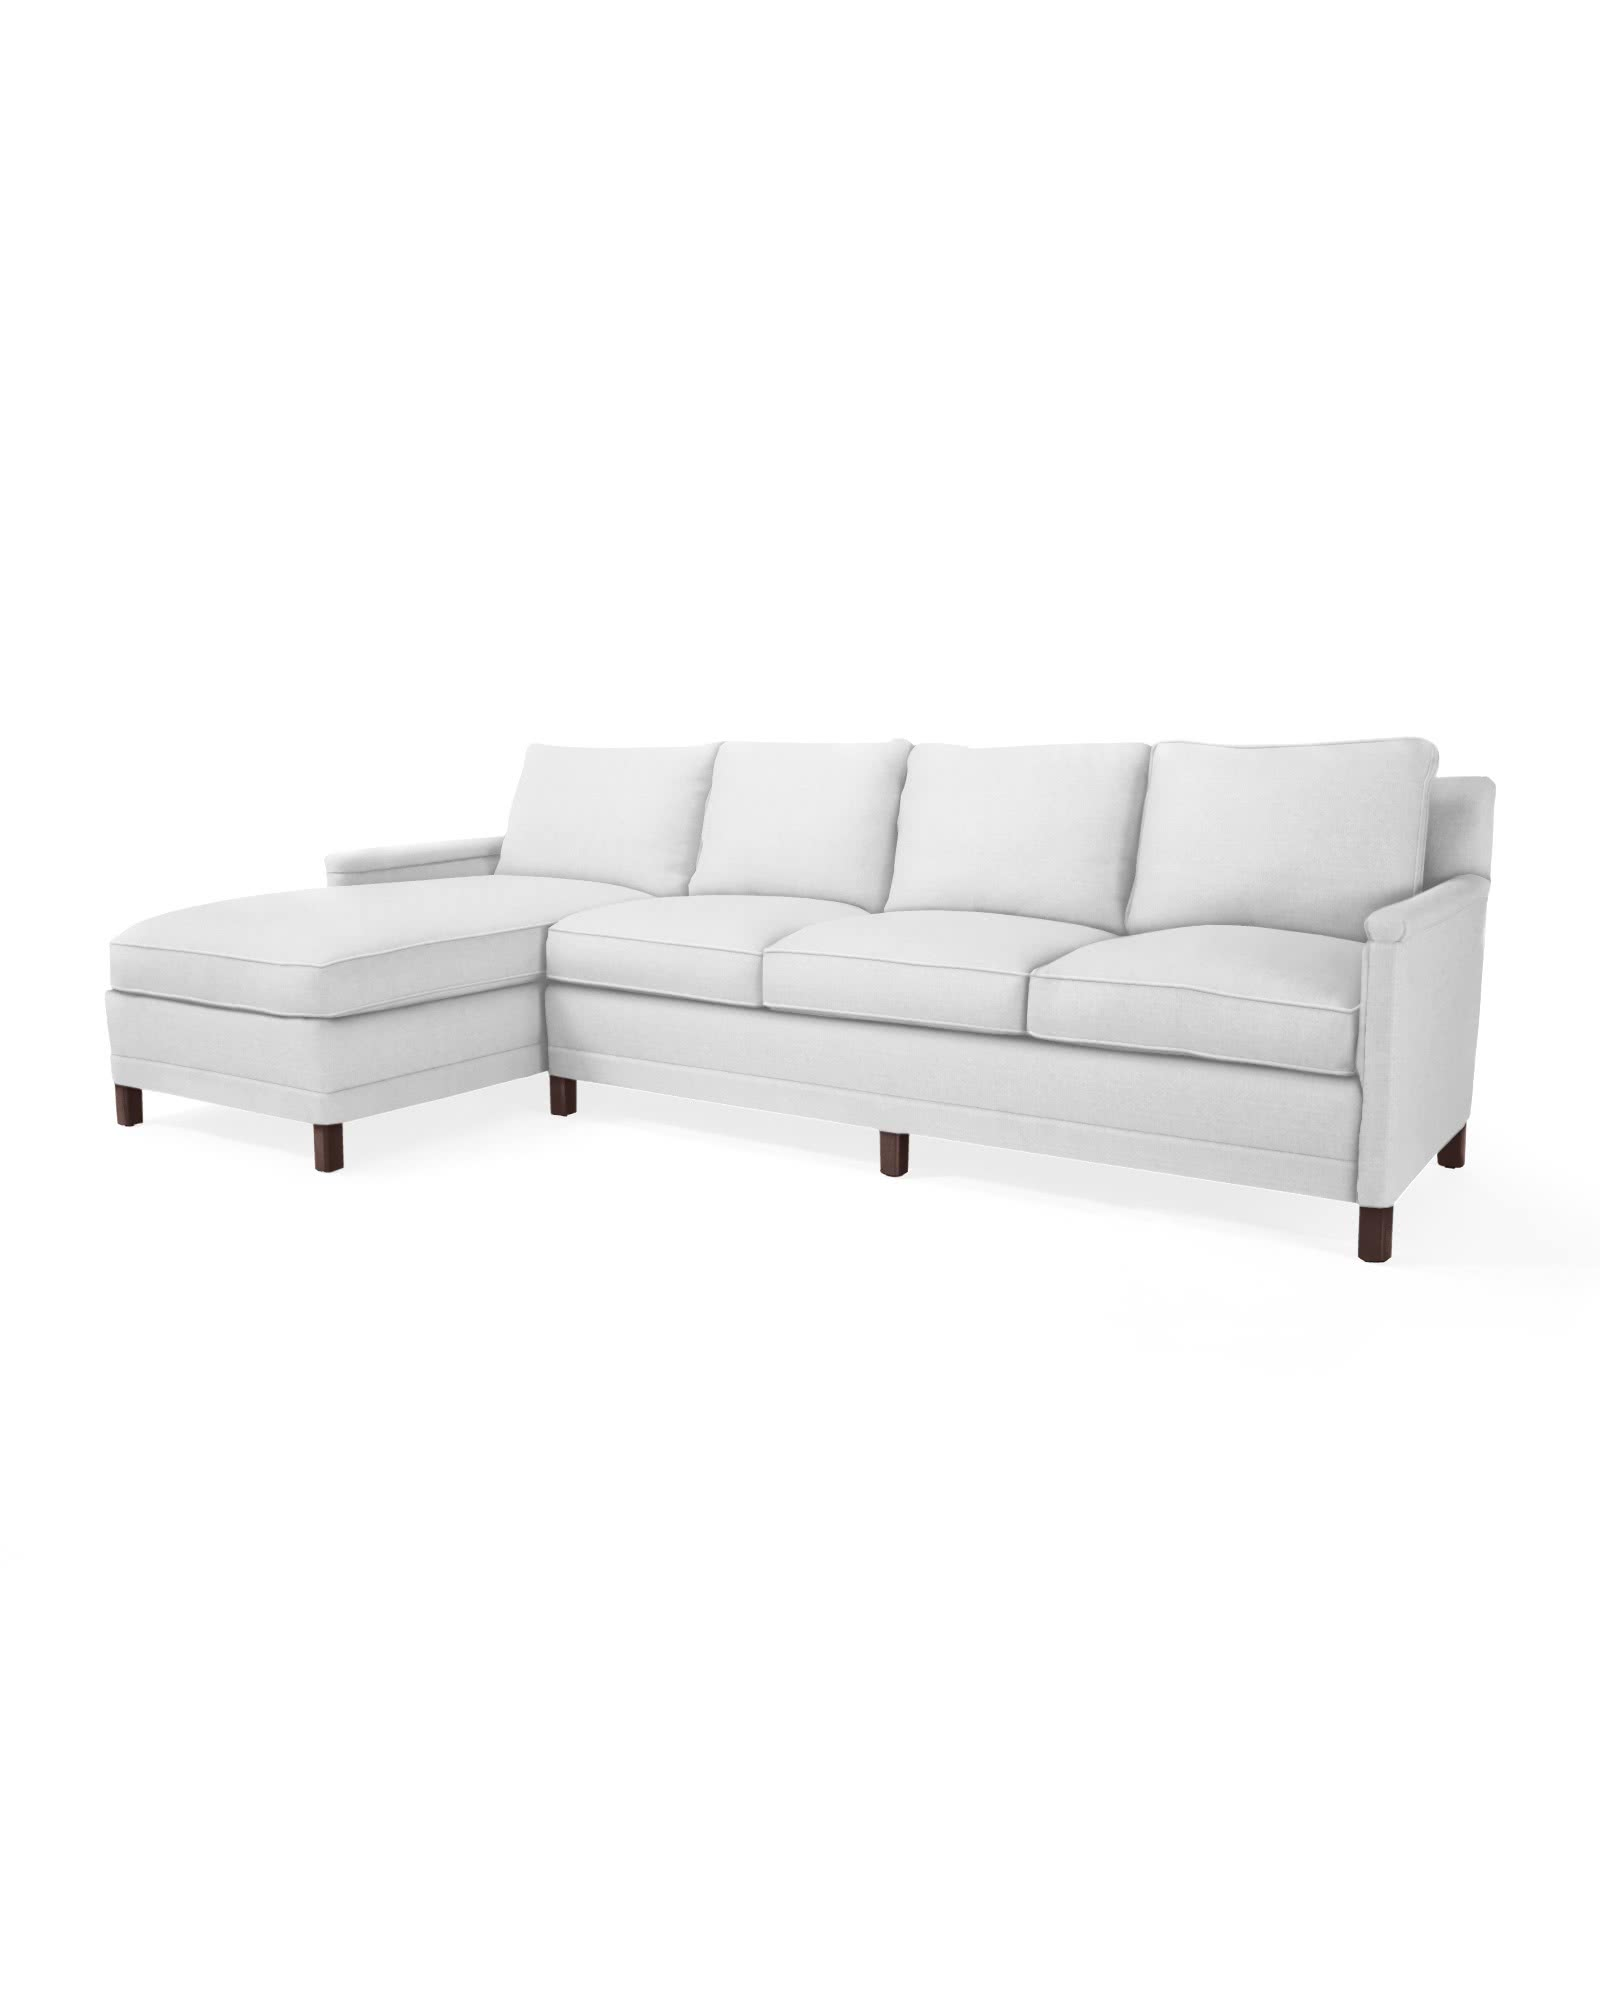 Spruce Street Left-Facing Chaise Sectional